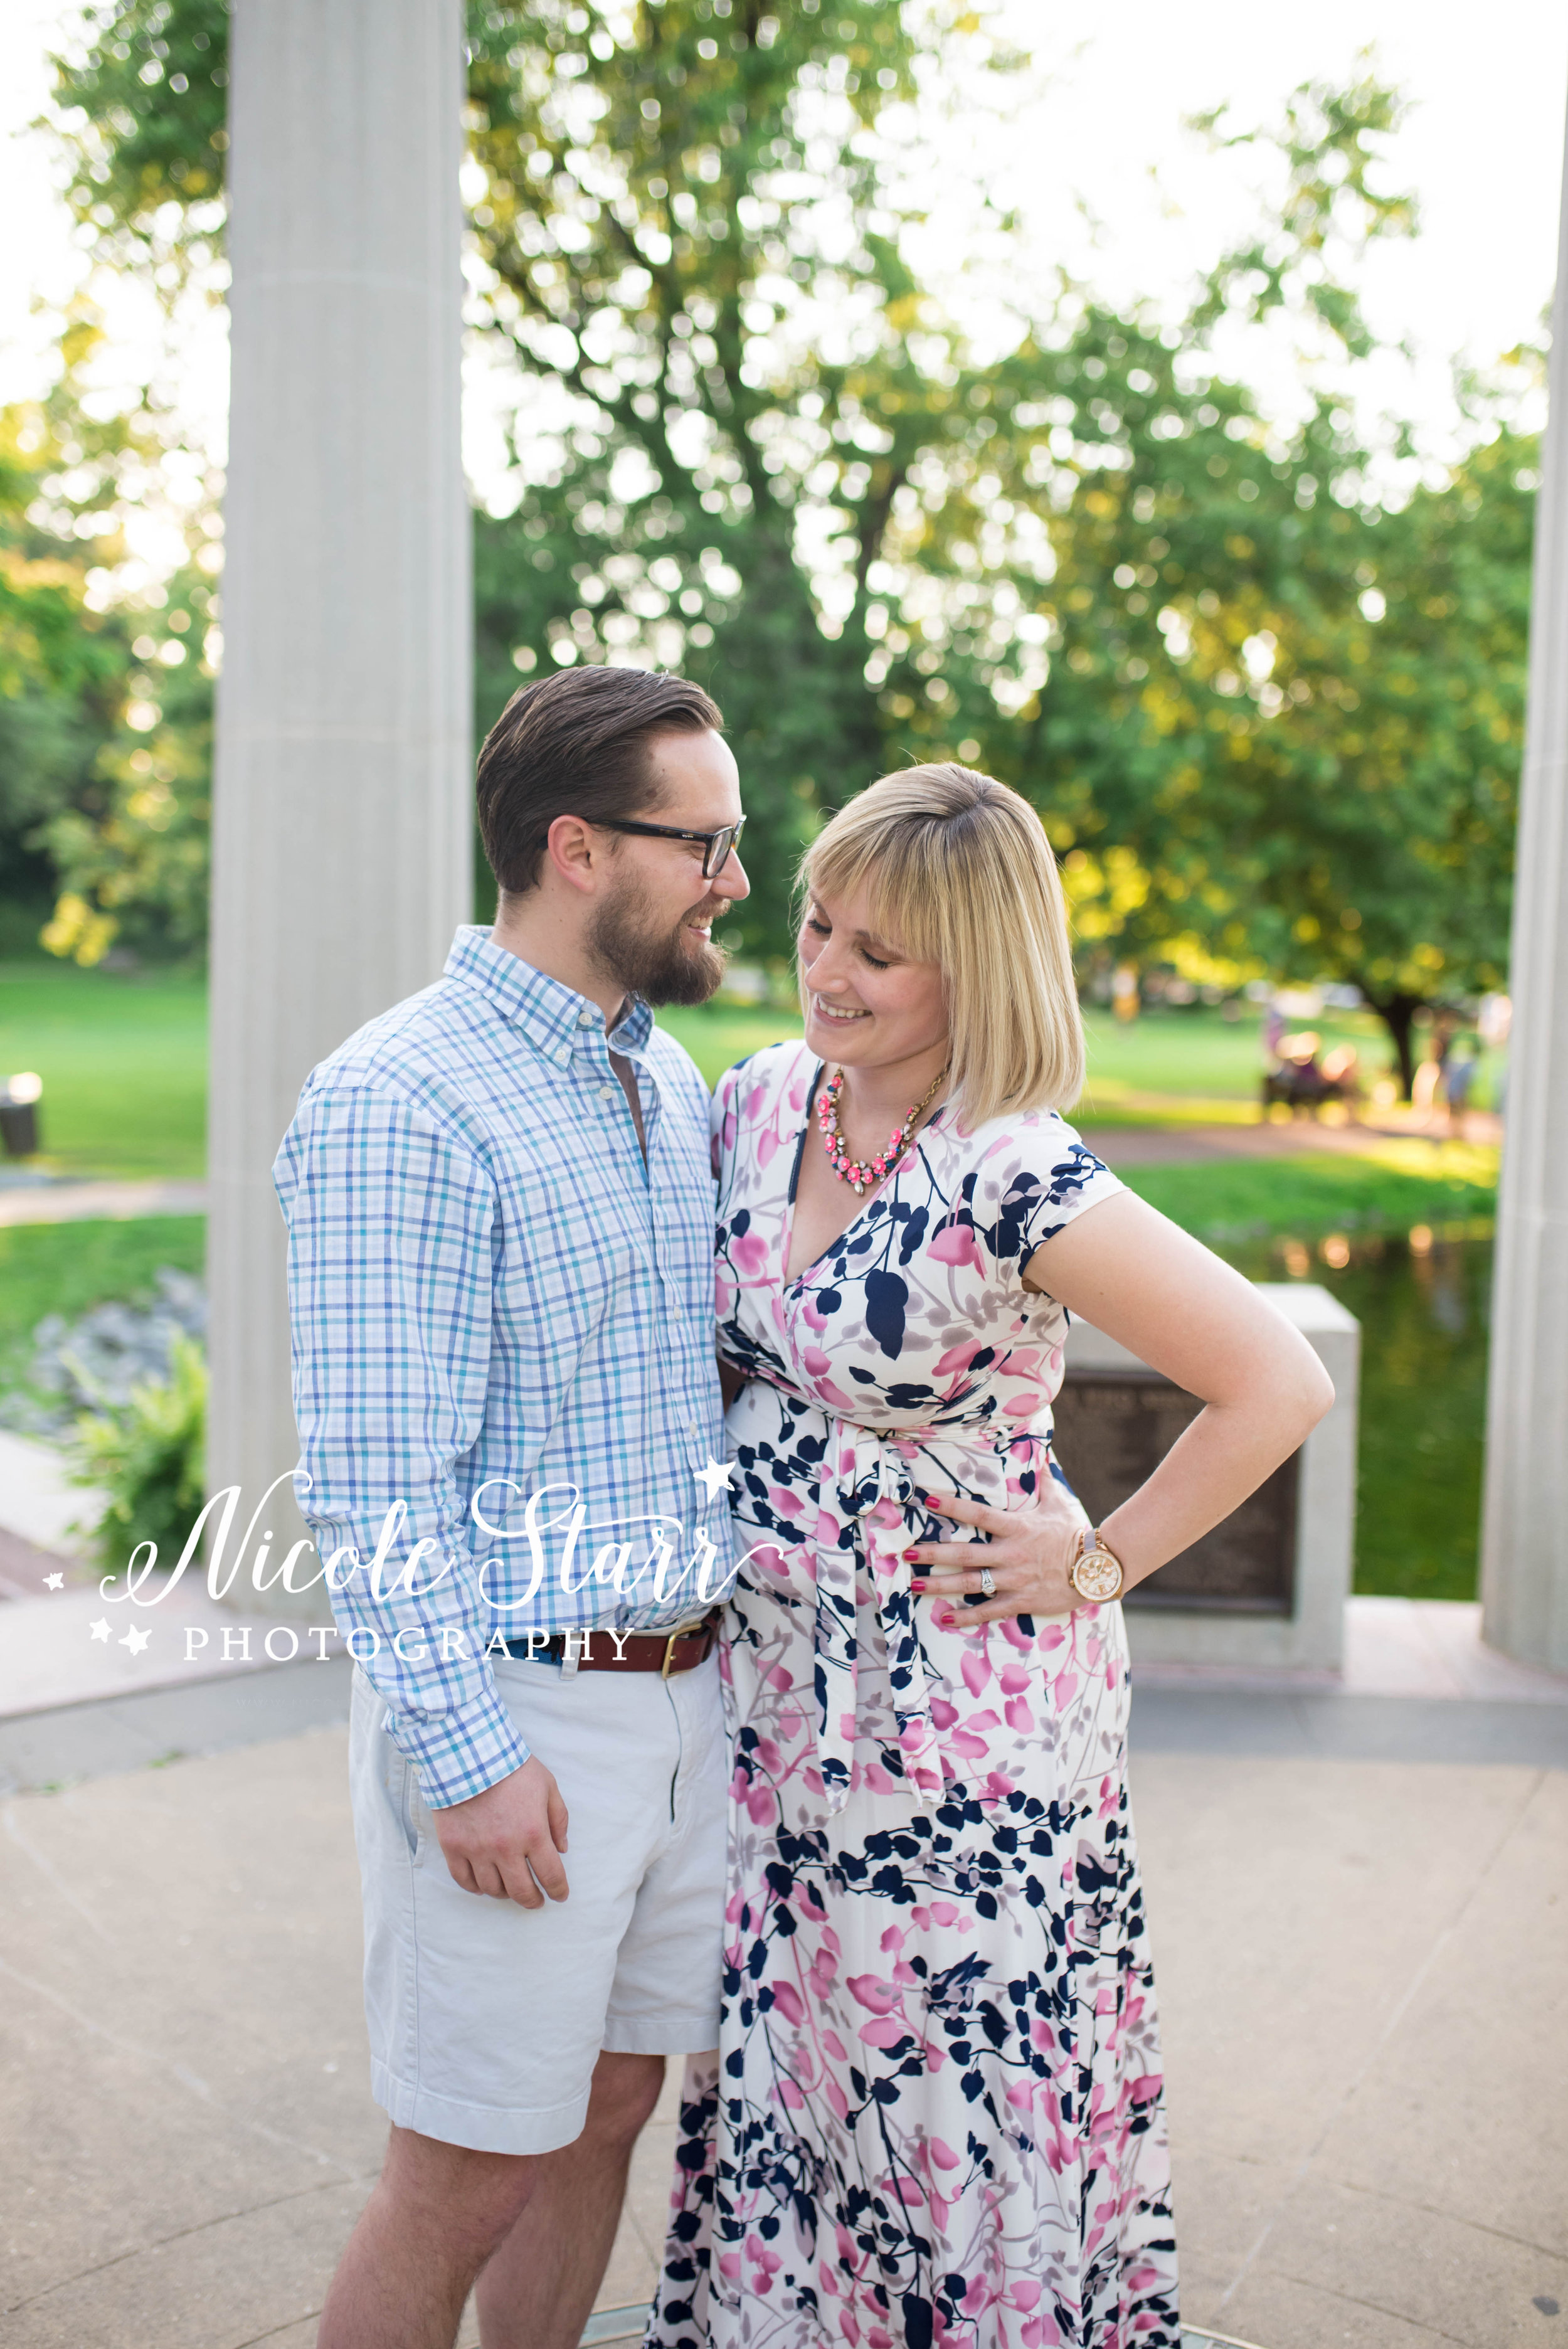 Nicole Starr Photography | Saratoga Springs Maternity Photographer | Boston Maternity Photographer | Upstate NY Maternity Photographer | Maternity Photographer